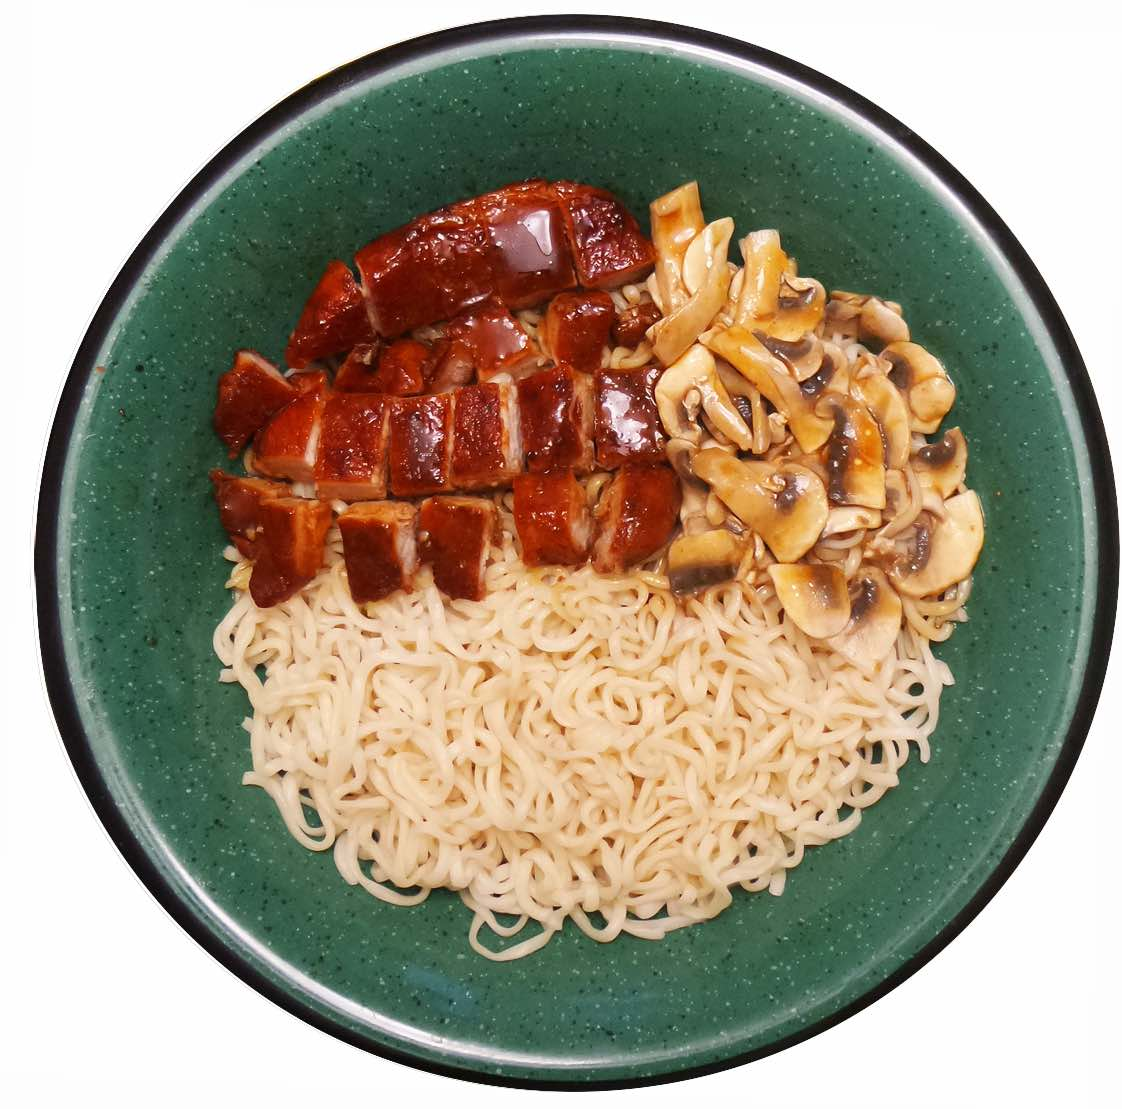 Cheang's Sinofood - BBQ Pork Noodle Bowl (400g)